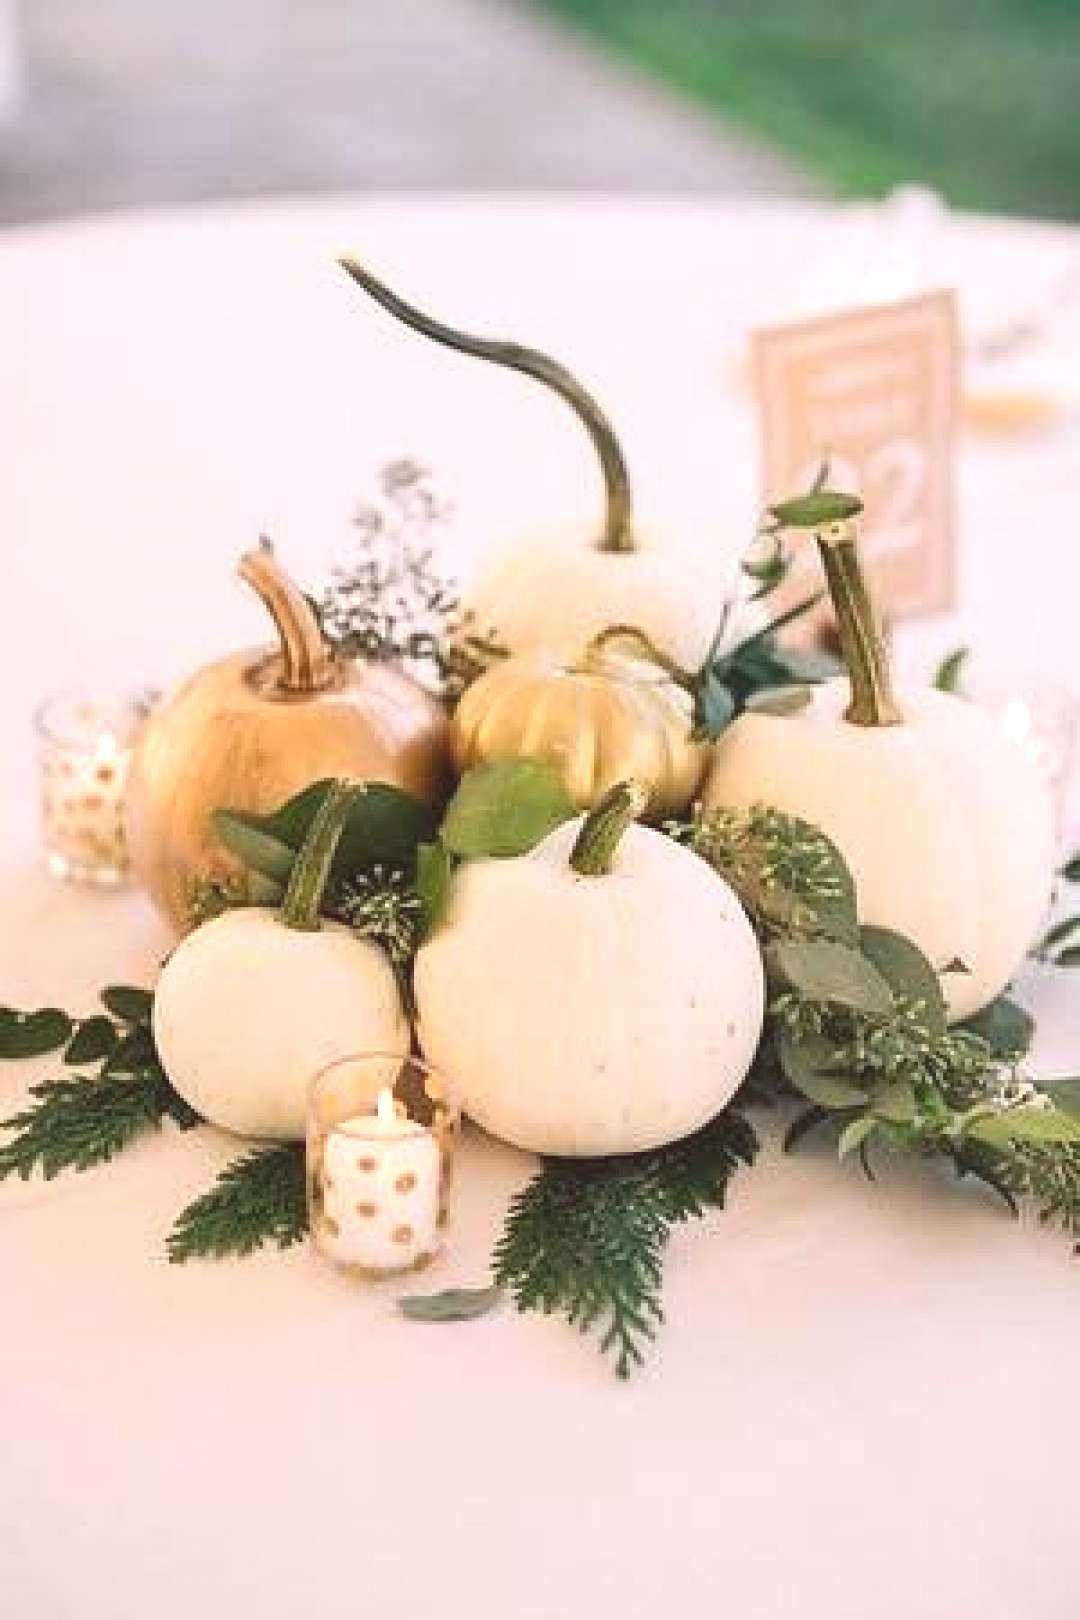 attn Pittsburgh Fall brides/grooms! I will grow your wedding pumpkins! - I have a small farm opera